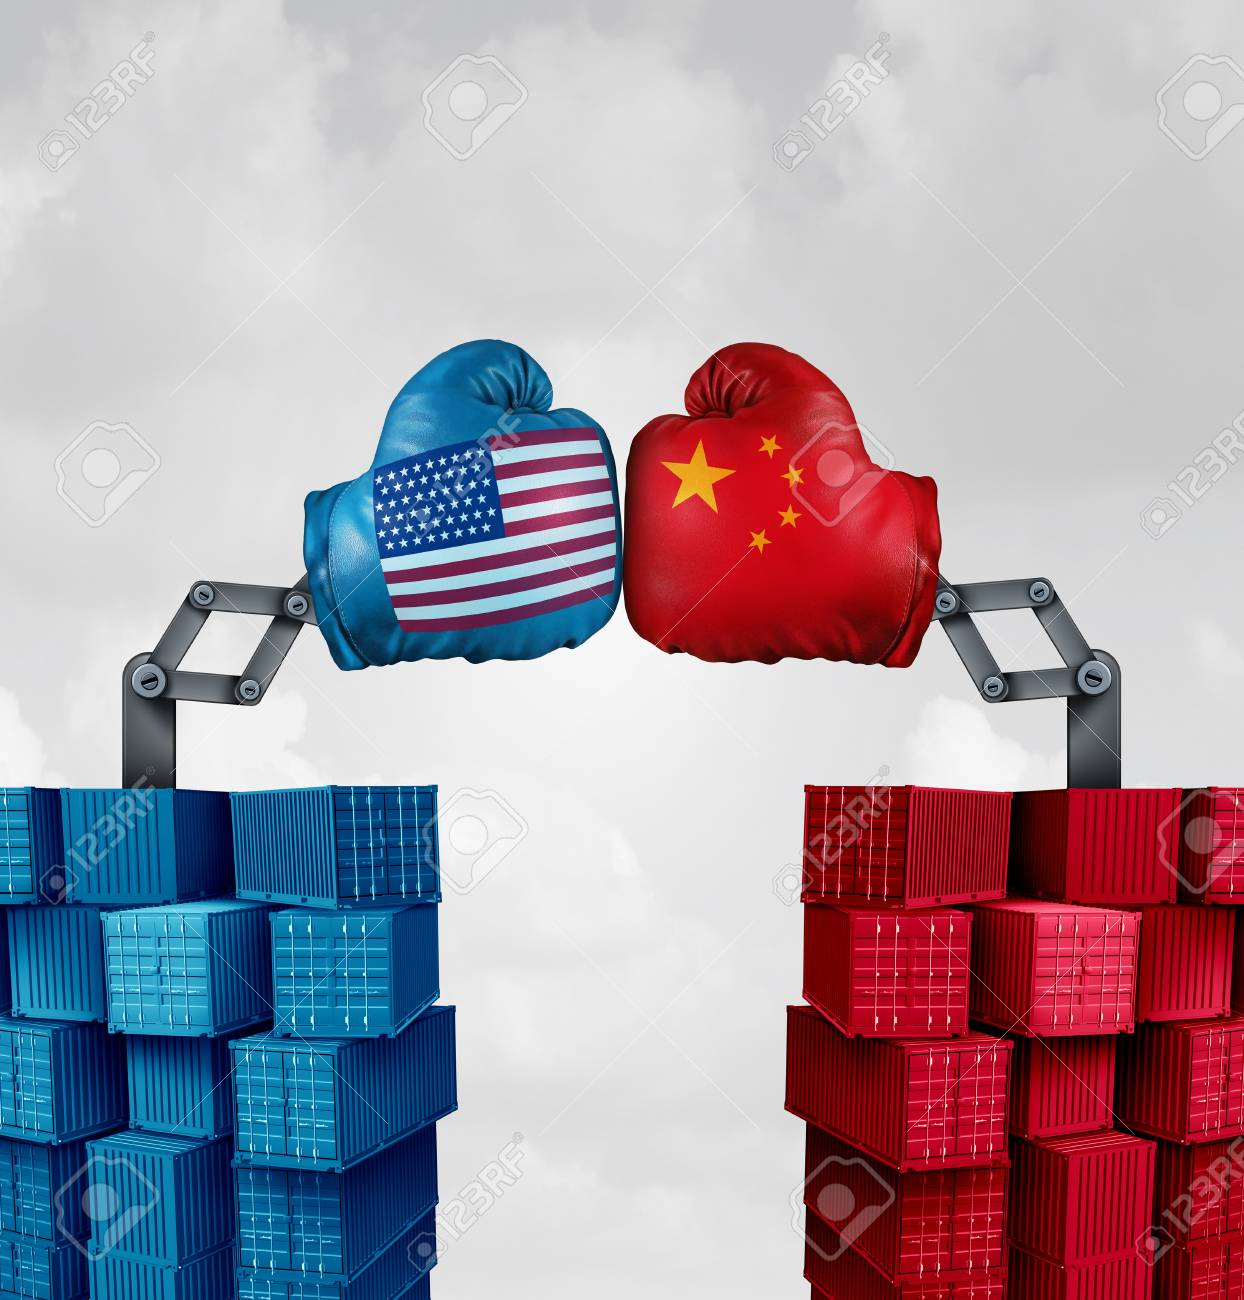 Trade war US China or American tariffs fight as two opposing cargo groups fighting as an economic punitive taxation dispute over import and exports concept as a 3D illustration elements. - 109067400